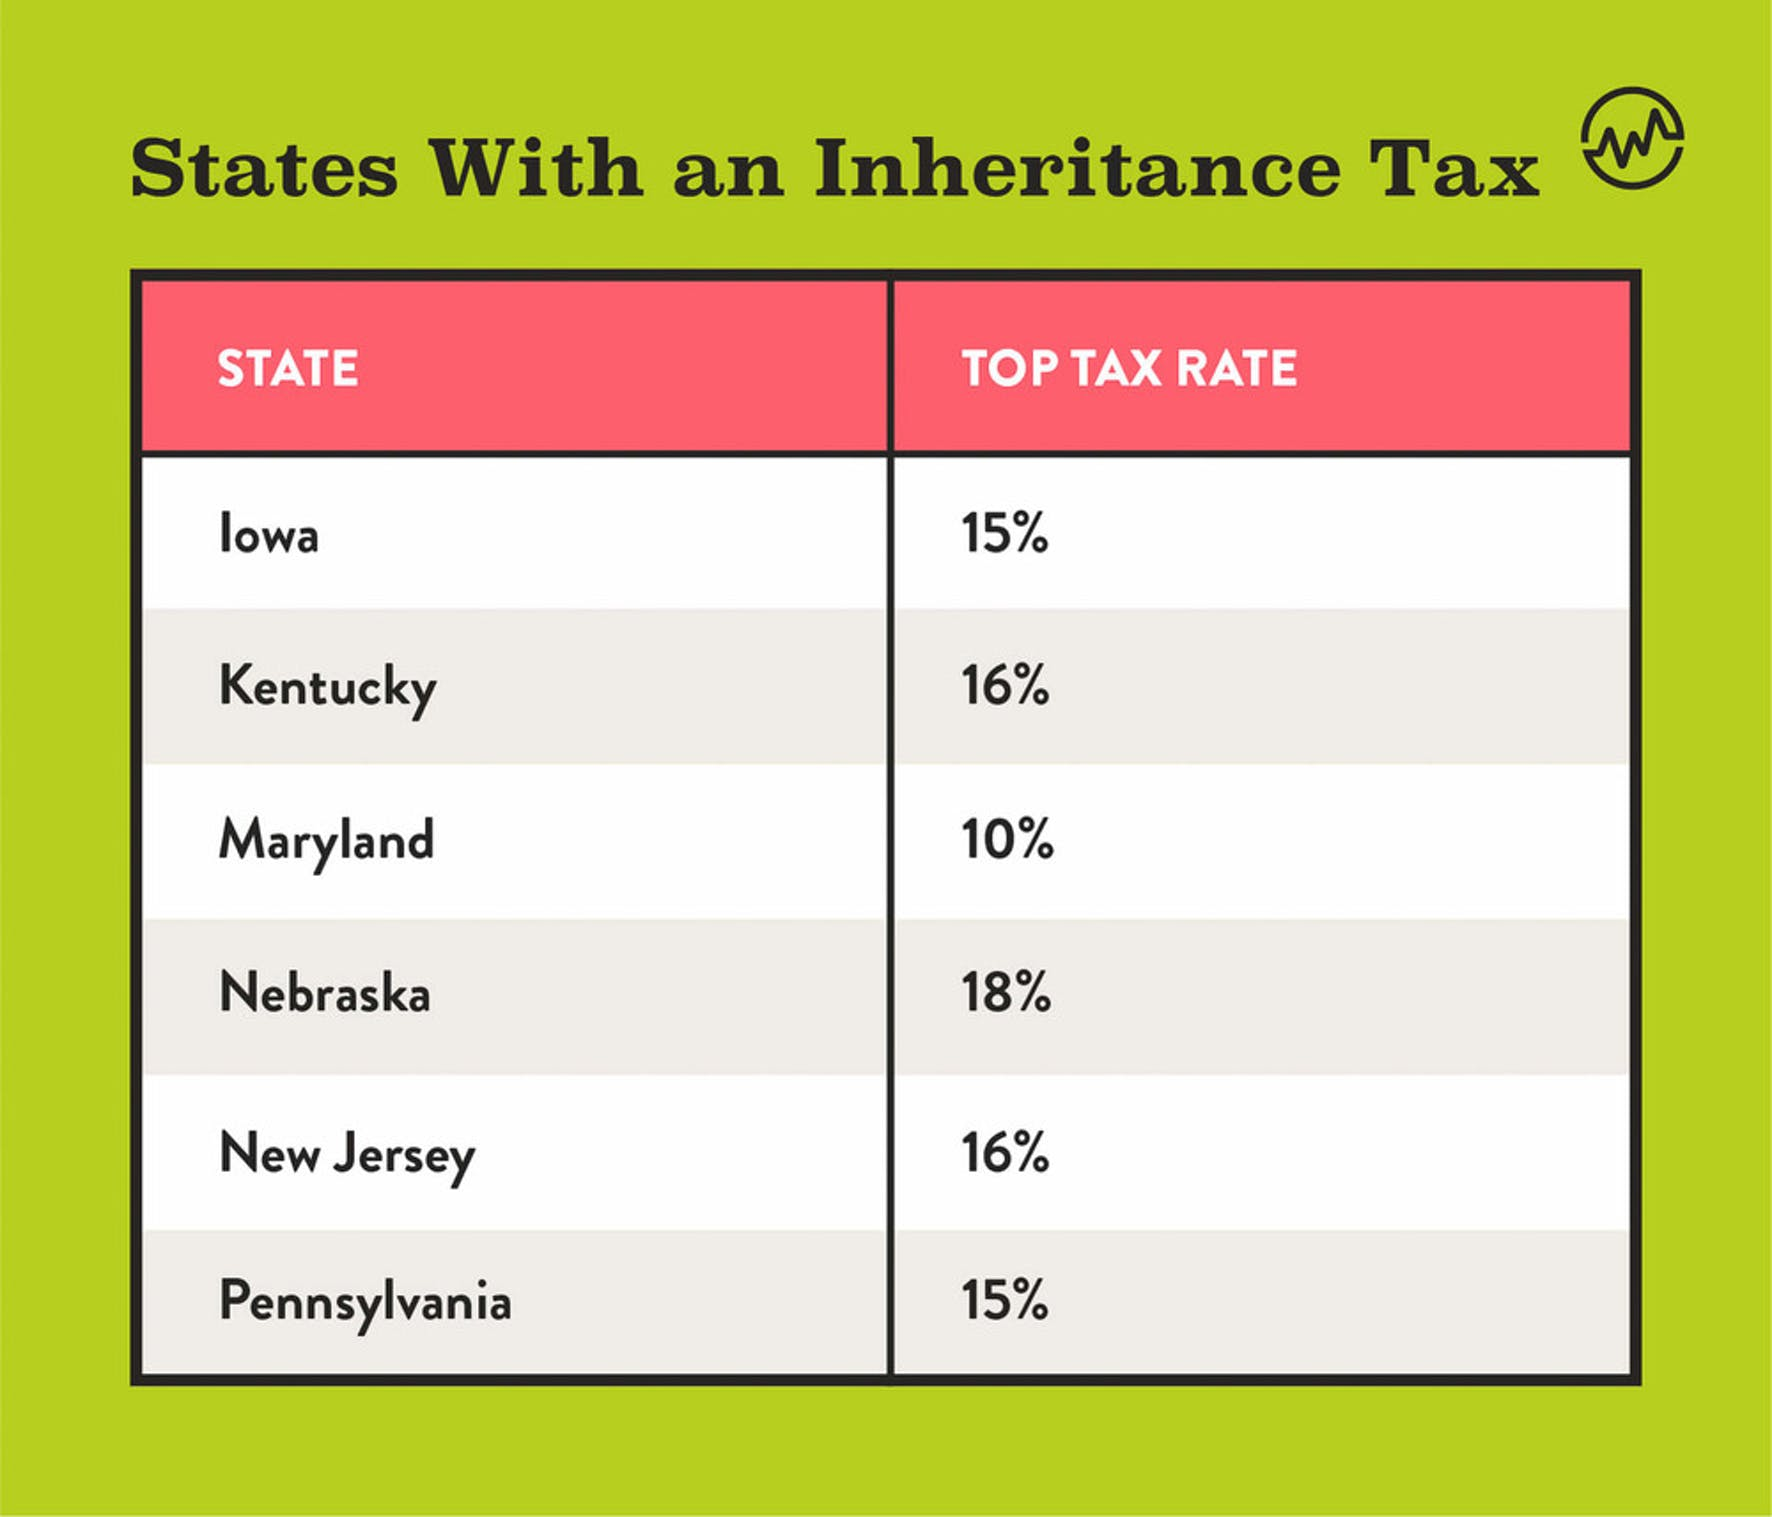 States with an inheritance tax